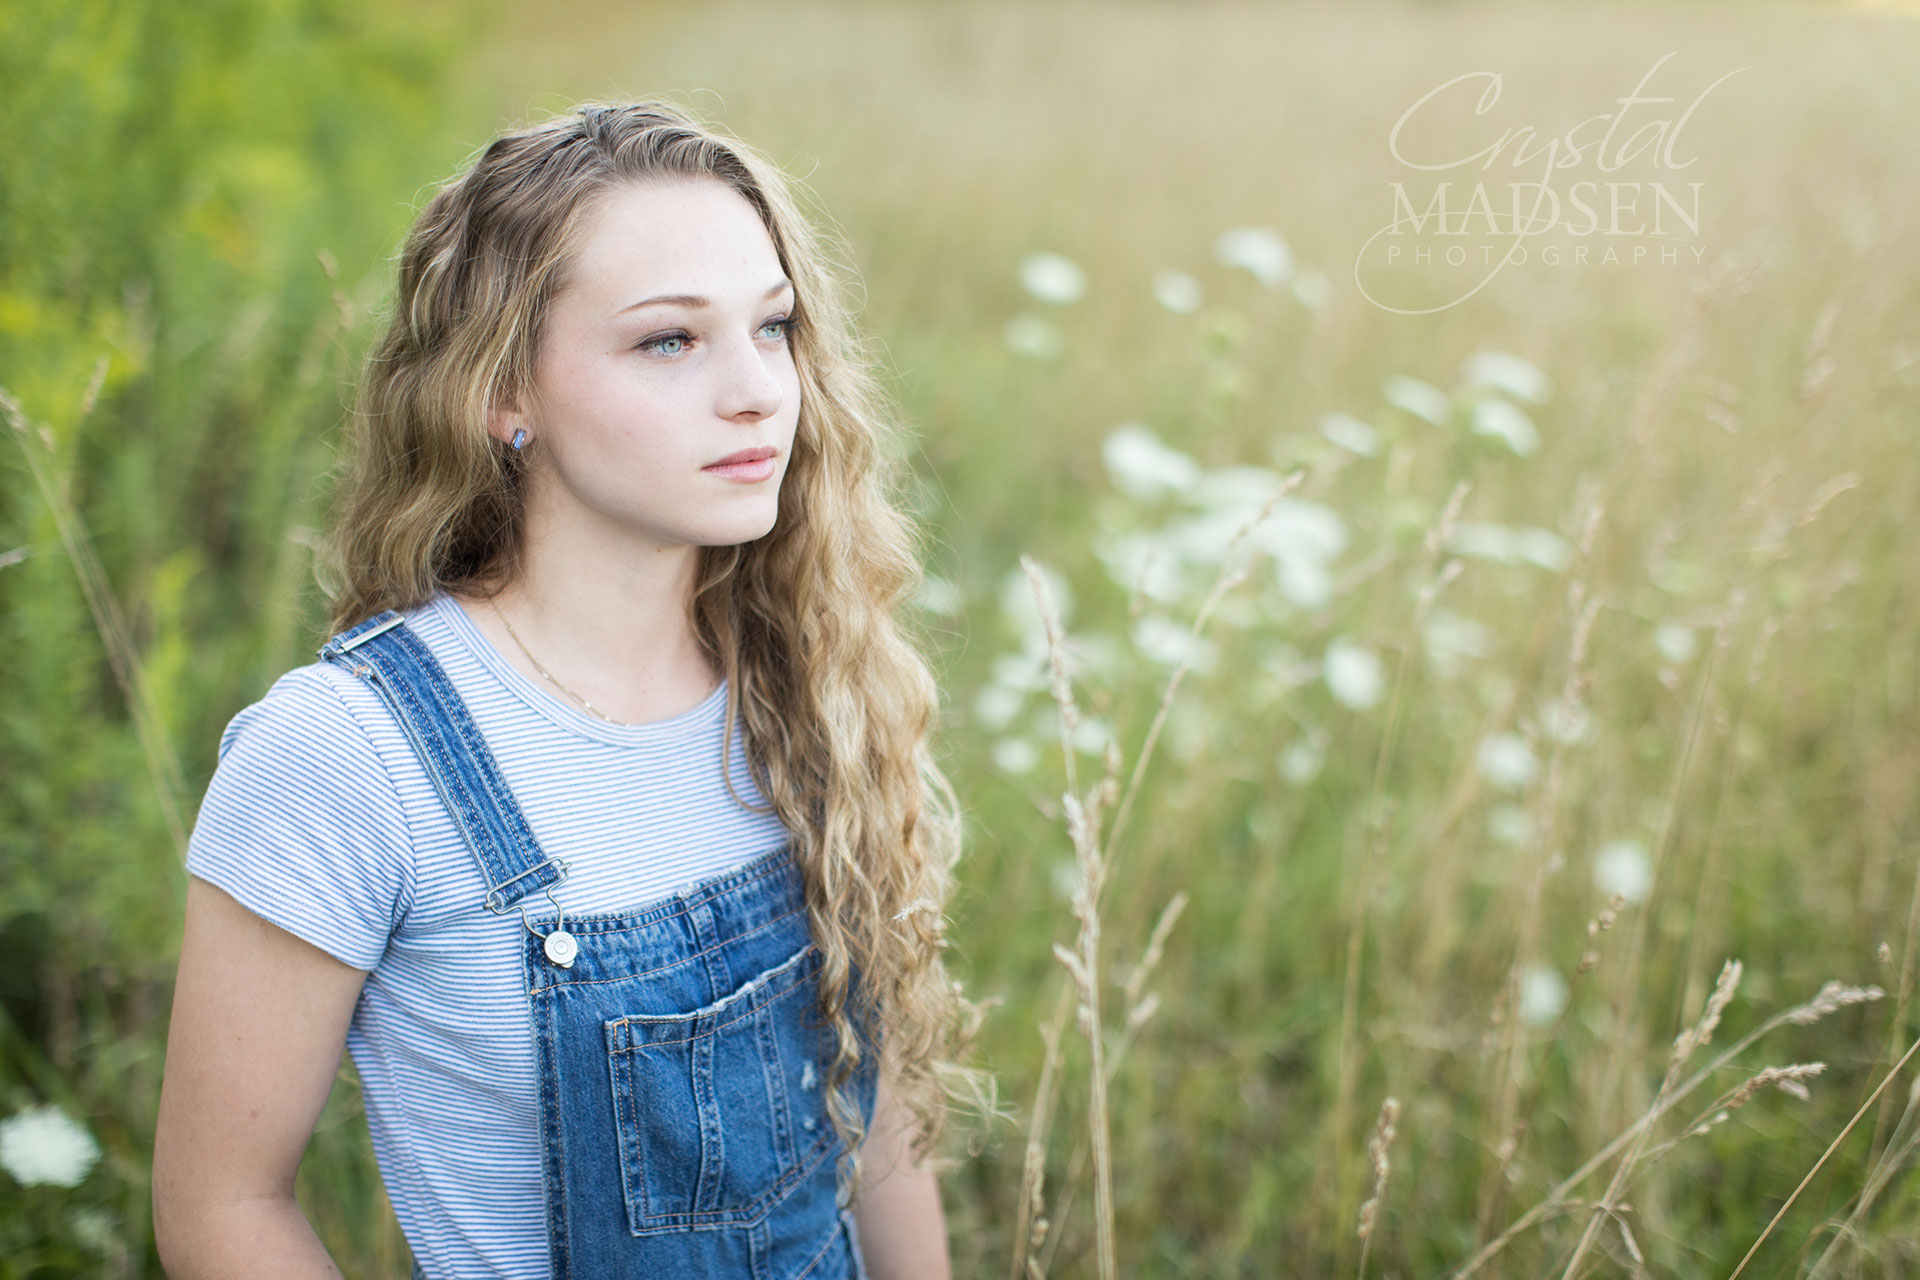 Beautiful senior pictures spokane